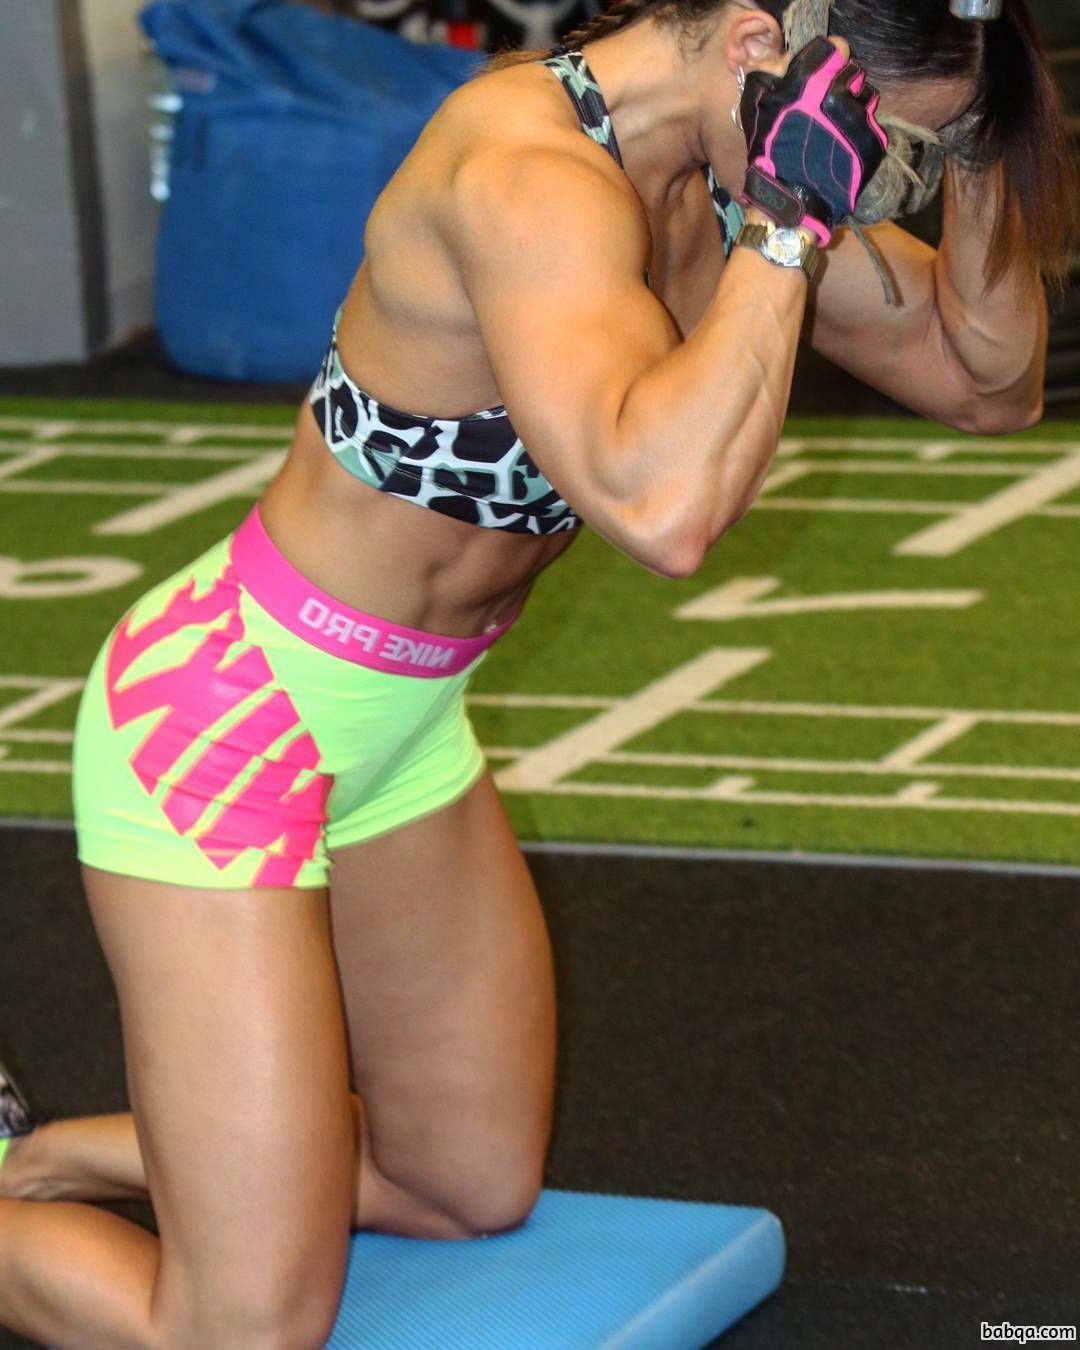 hot girl with muscle body and toned legs post from g+